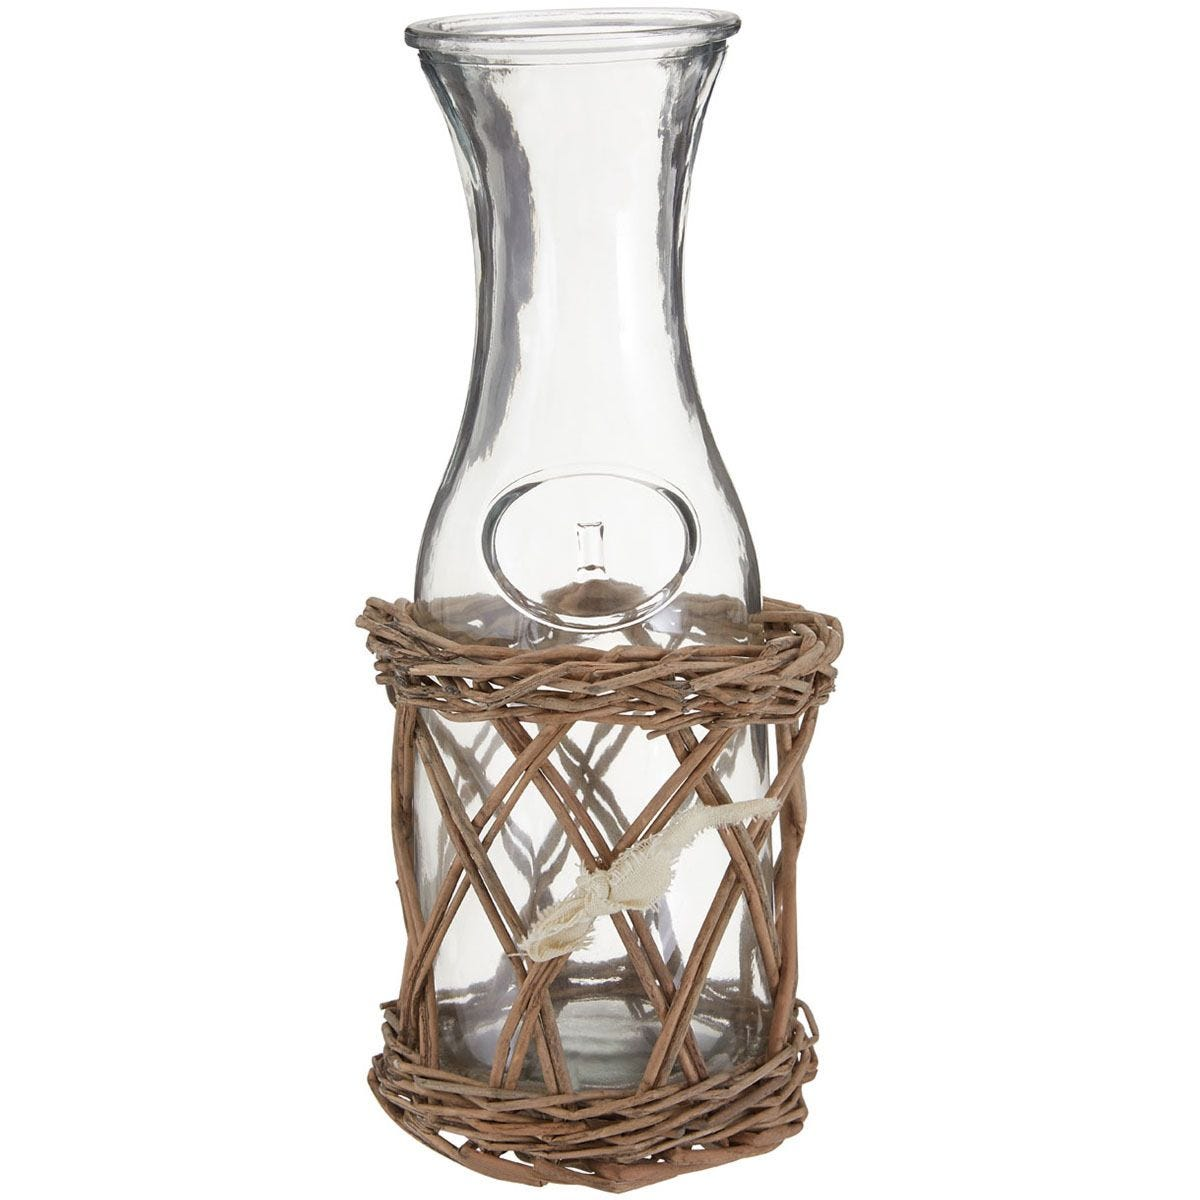 Premier Housewares Country Glass Bottle and Basket